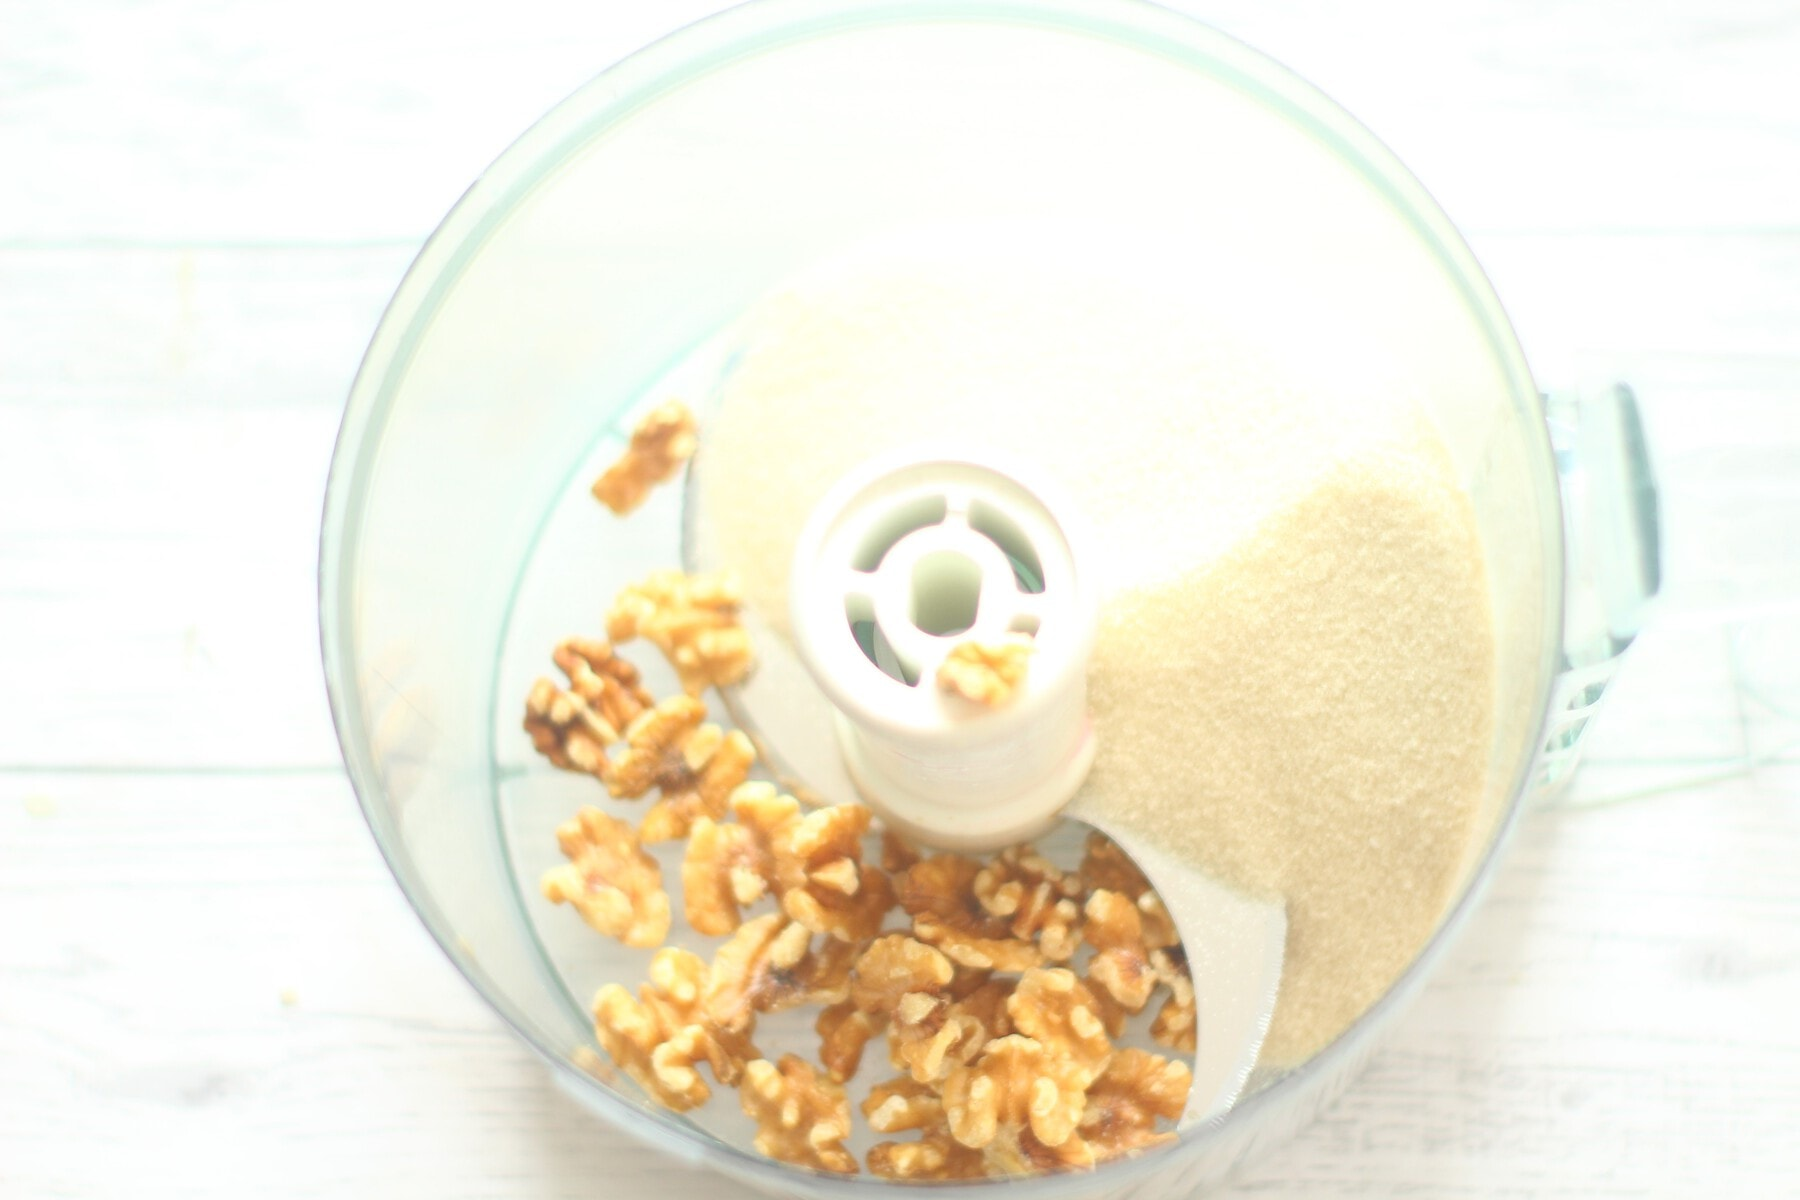 walnuts and sugar in a food processor